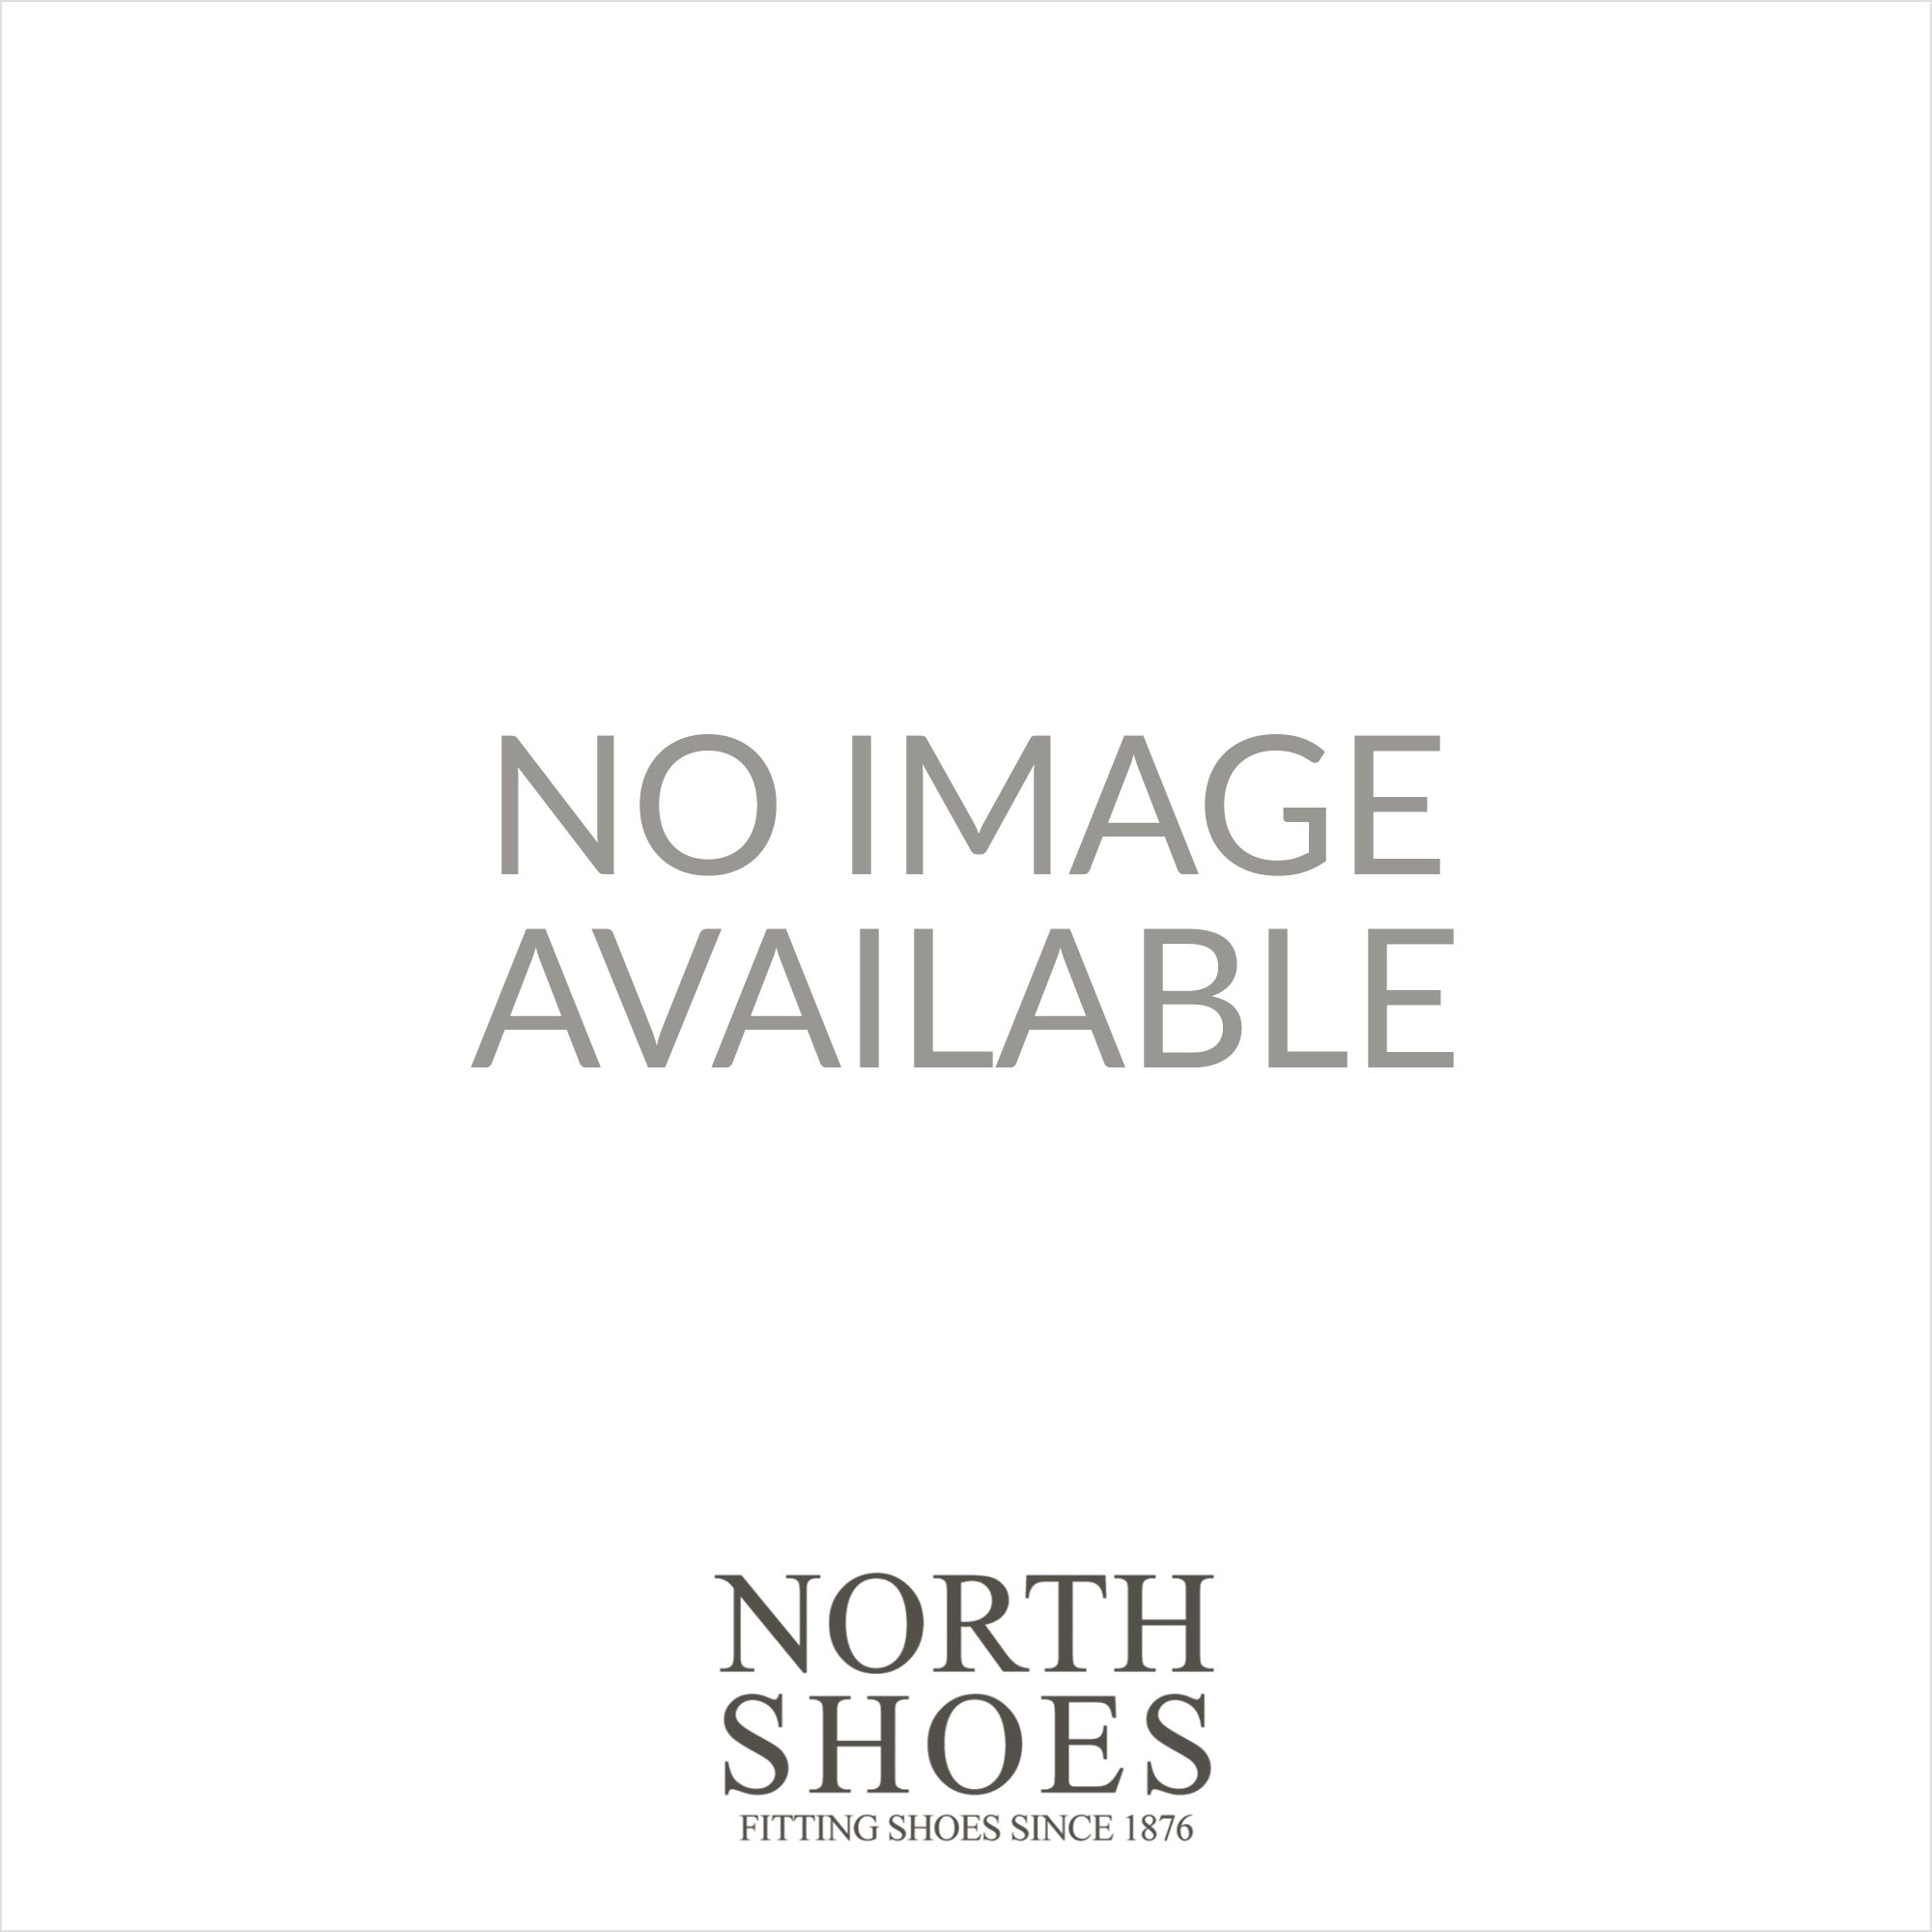 90e6cb376bc353 Clarks Softly Lou Navy Leather Girls First Mary Jane Shoe - Clarks from  North Shoes UK